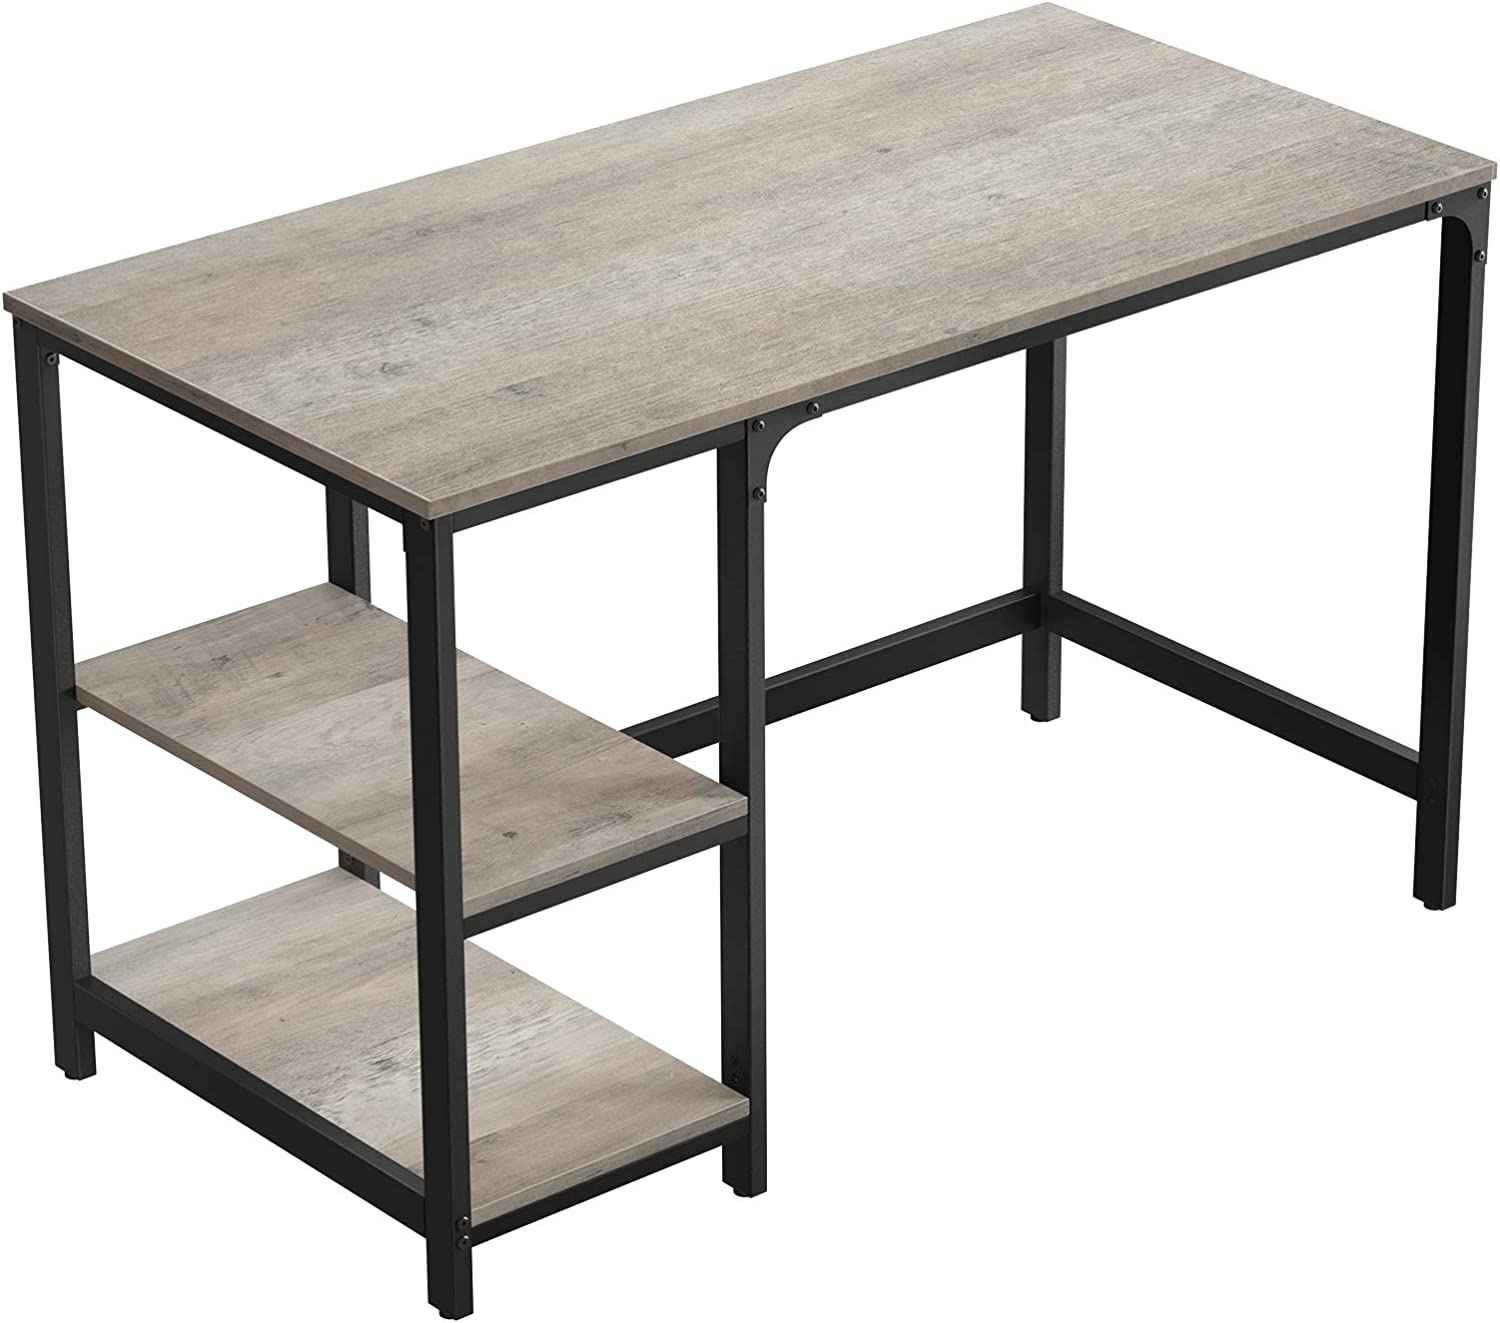 VASAGLE ALINRU Computer Desk, 47-Inch Office Study Desk for Laptops, with 2 Shelves on Left or Right, Stable Steel Frame, Industrial, Greige and Black ULWD47MB